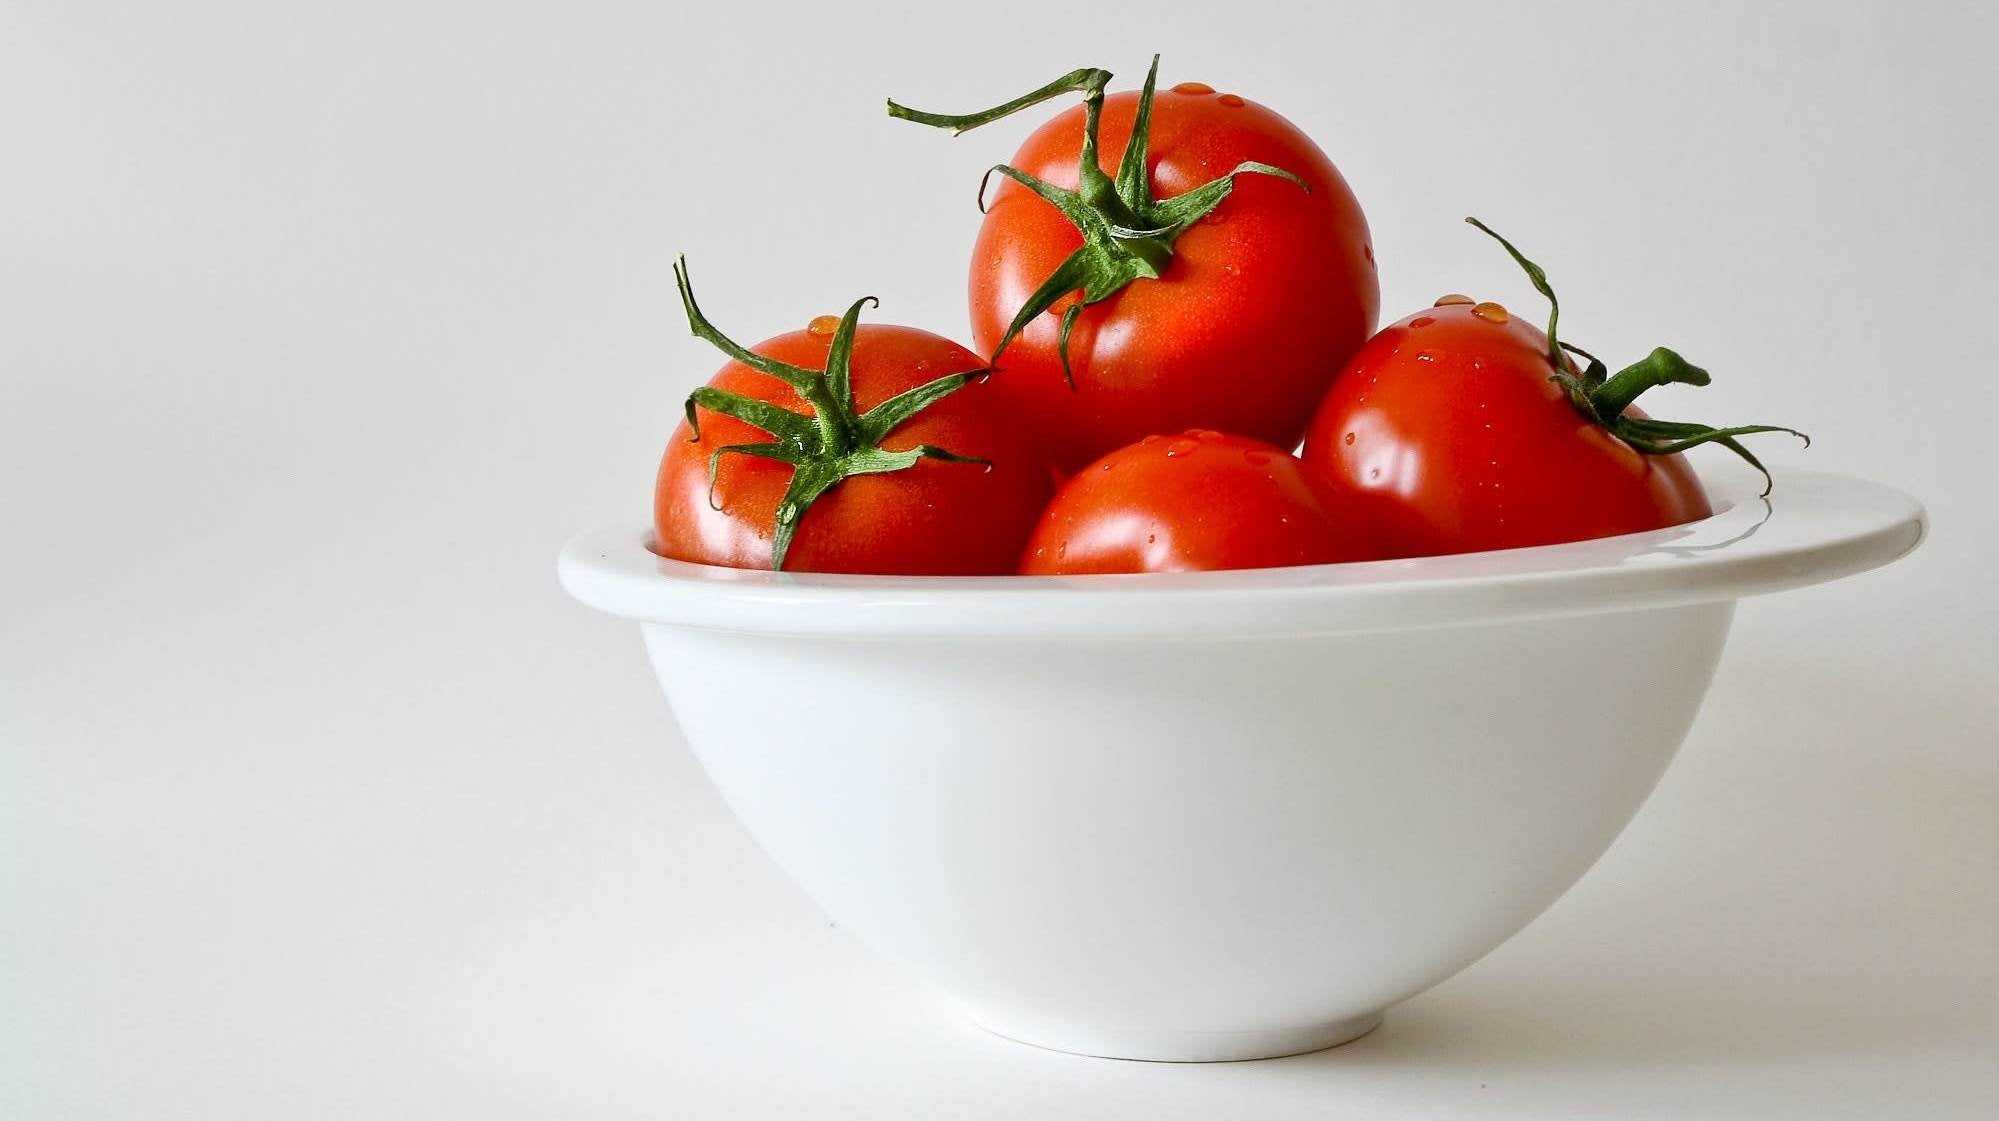 These Are The Best Ways To Eat Tomatoes